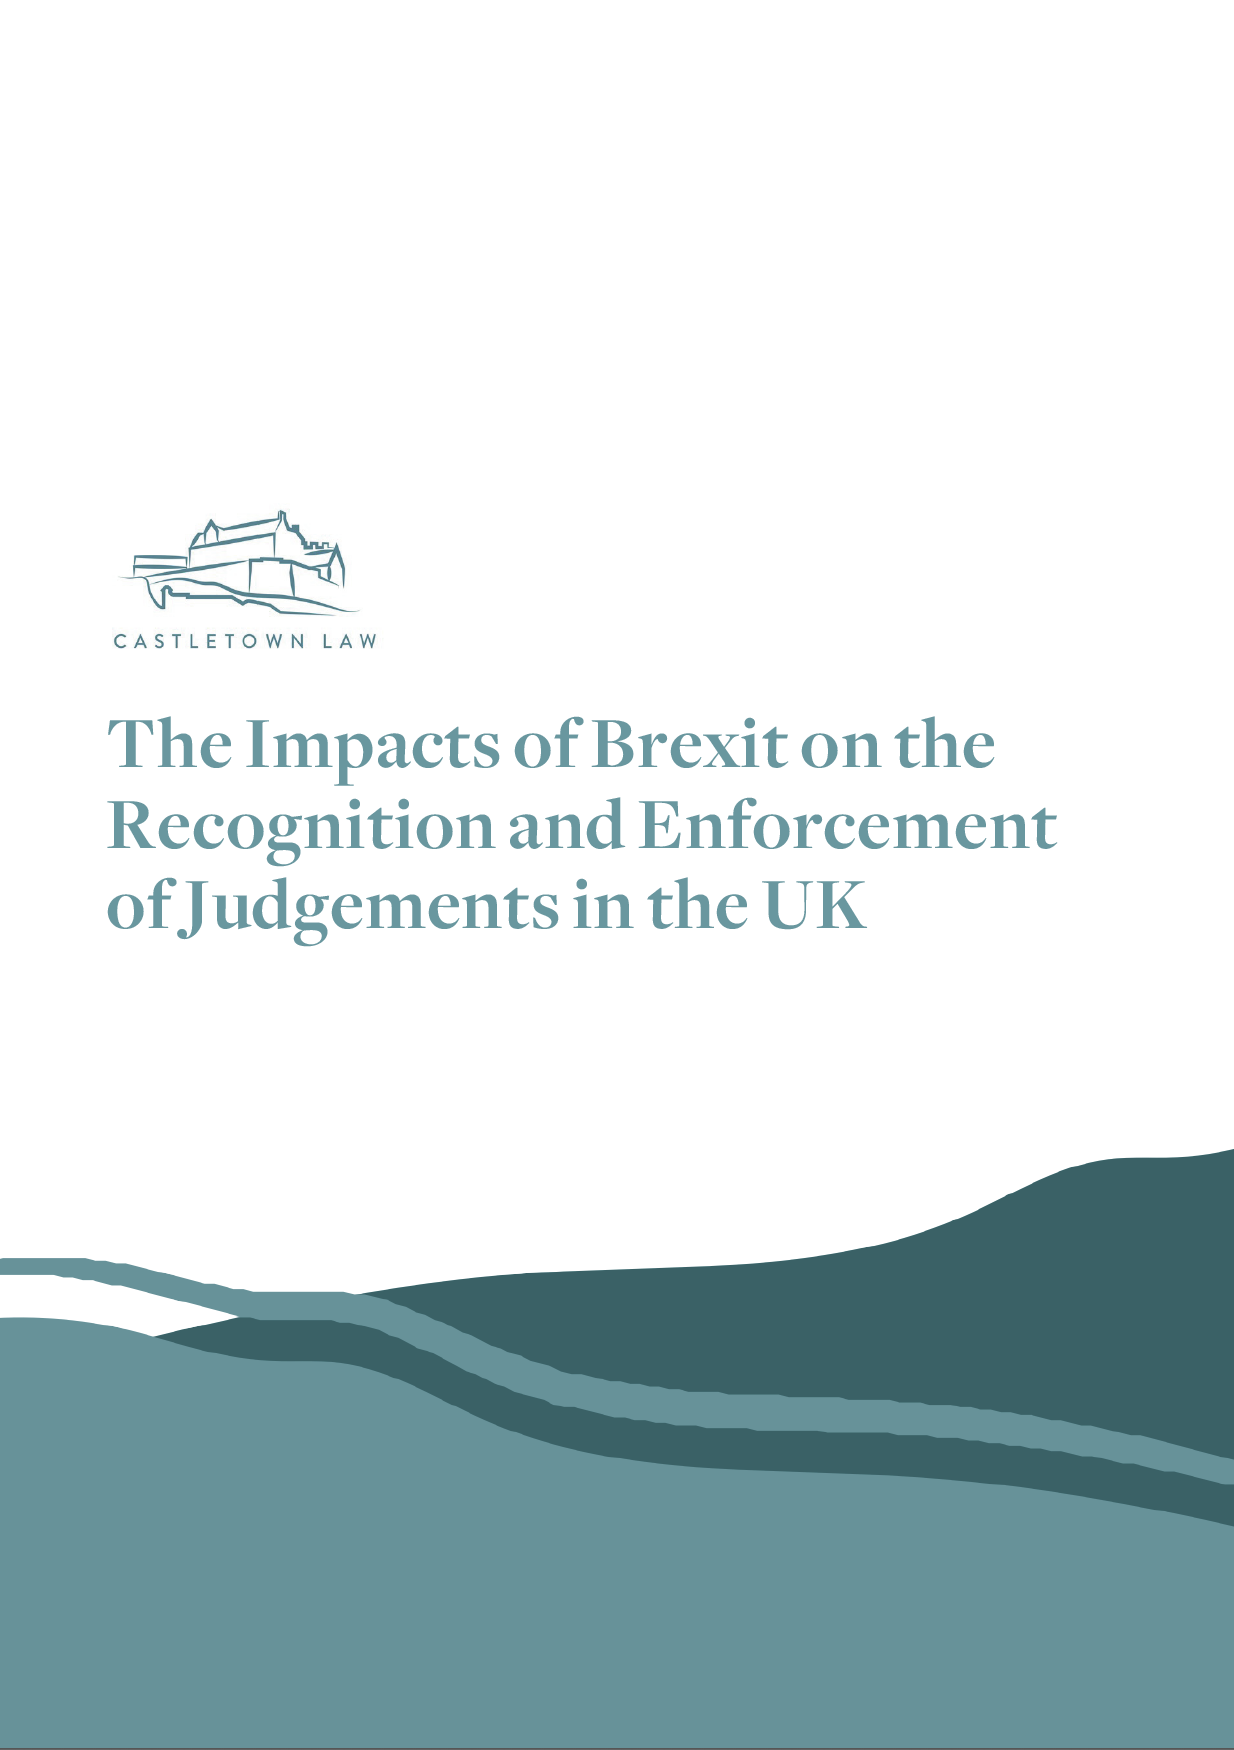 The Impacts of Brexit on the Recognition and Enforcement of Judgements in the UK (Mar 2021)